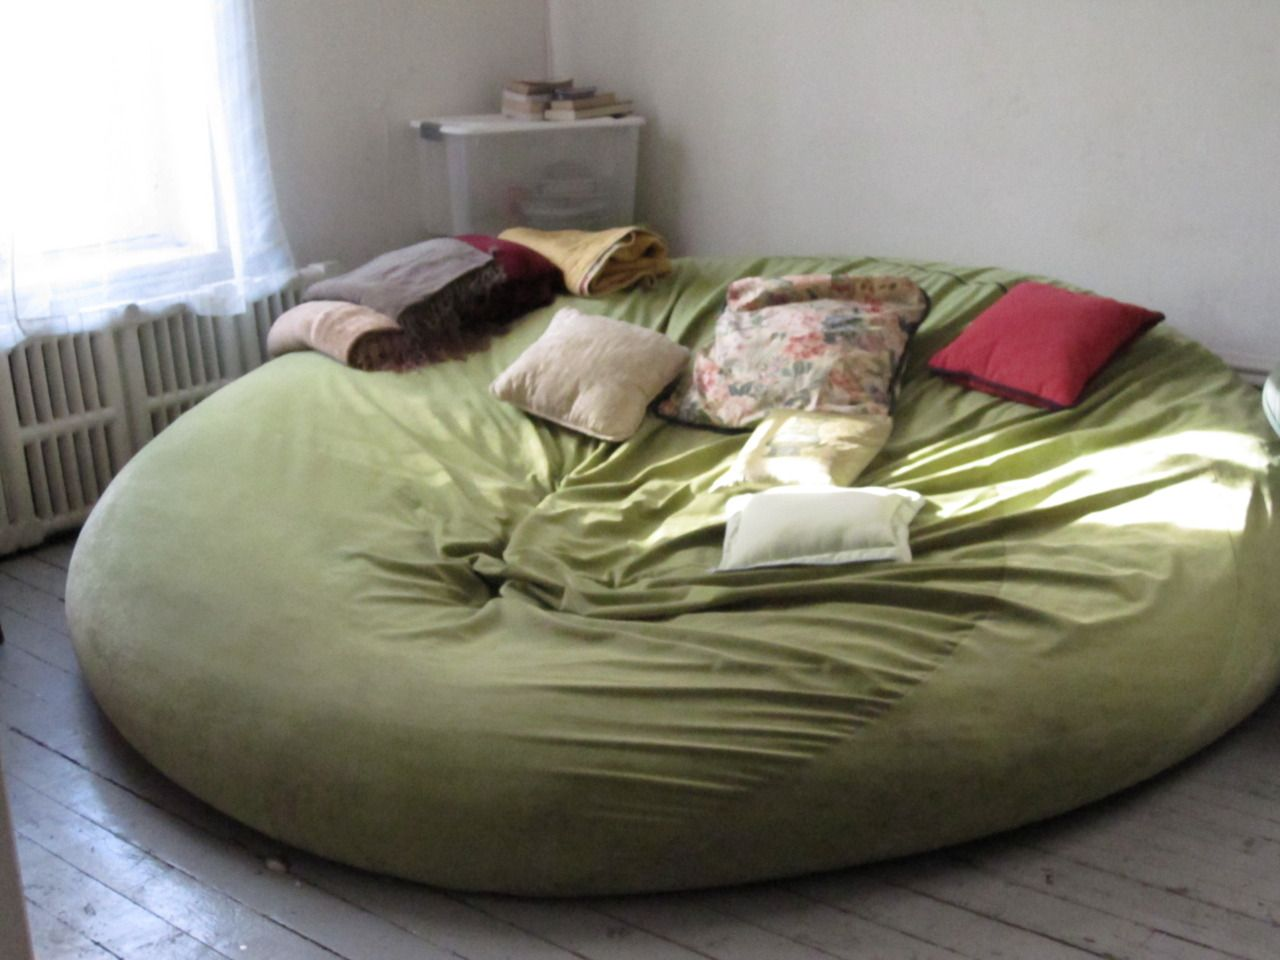 number on our one why giant just org oversized images diy best are it you see huge beanbag bag chair bean when is for comfy looking been what saccord sacks have bags